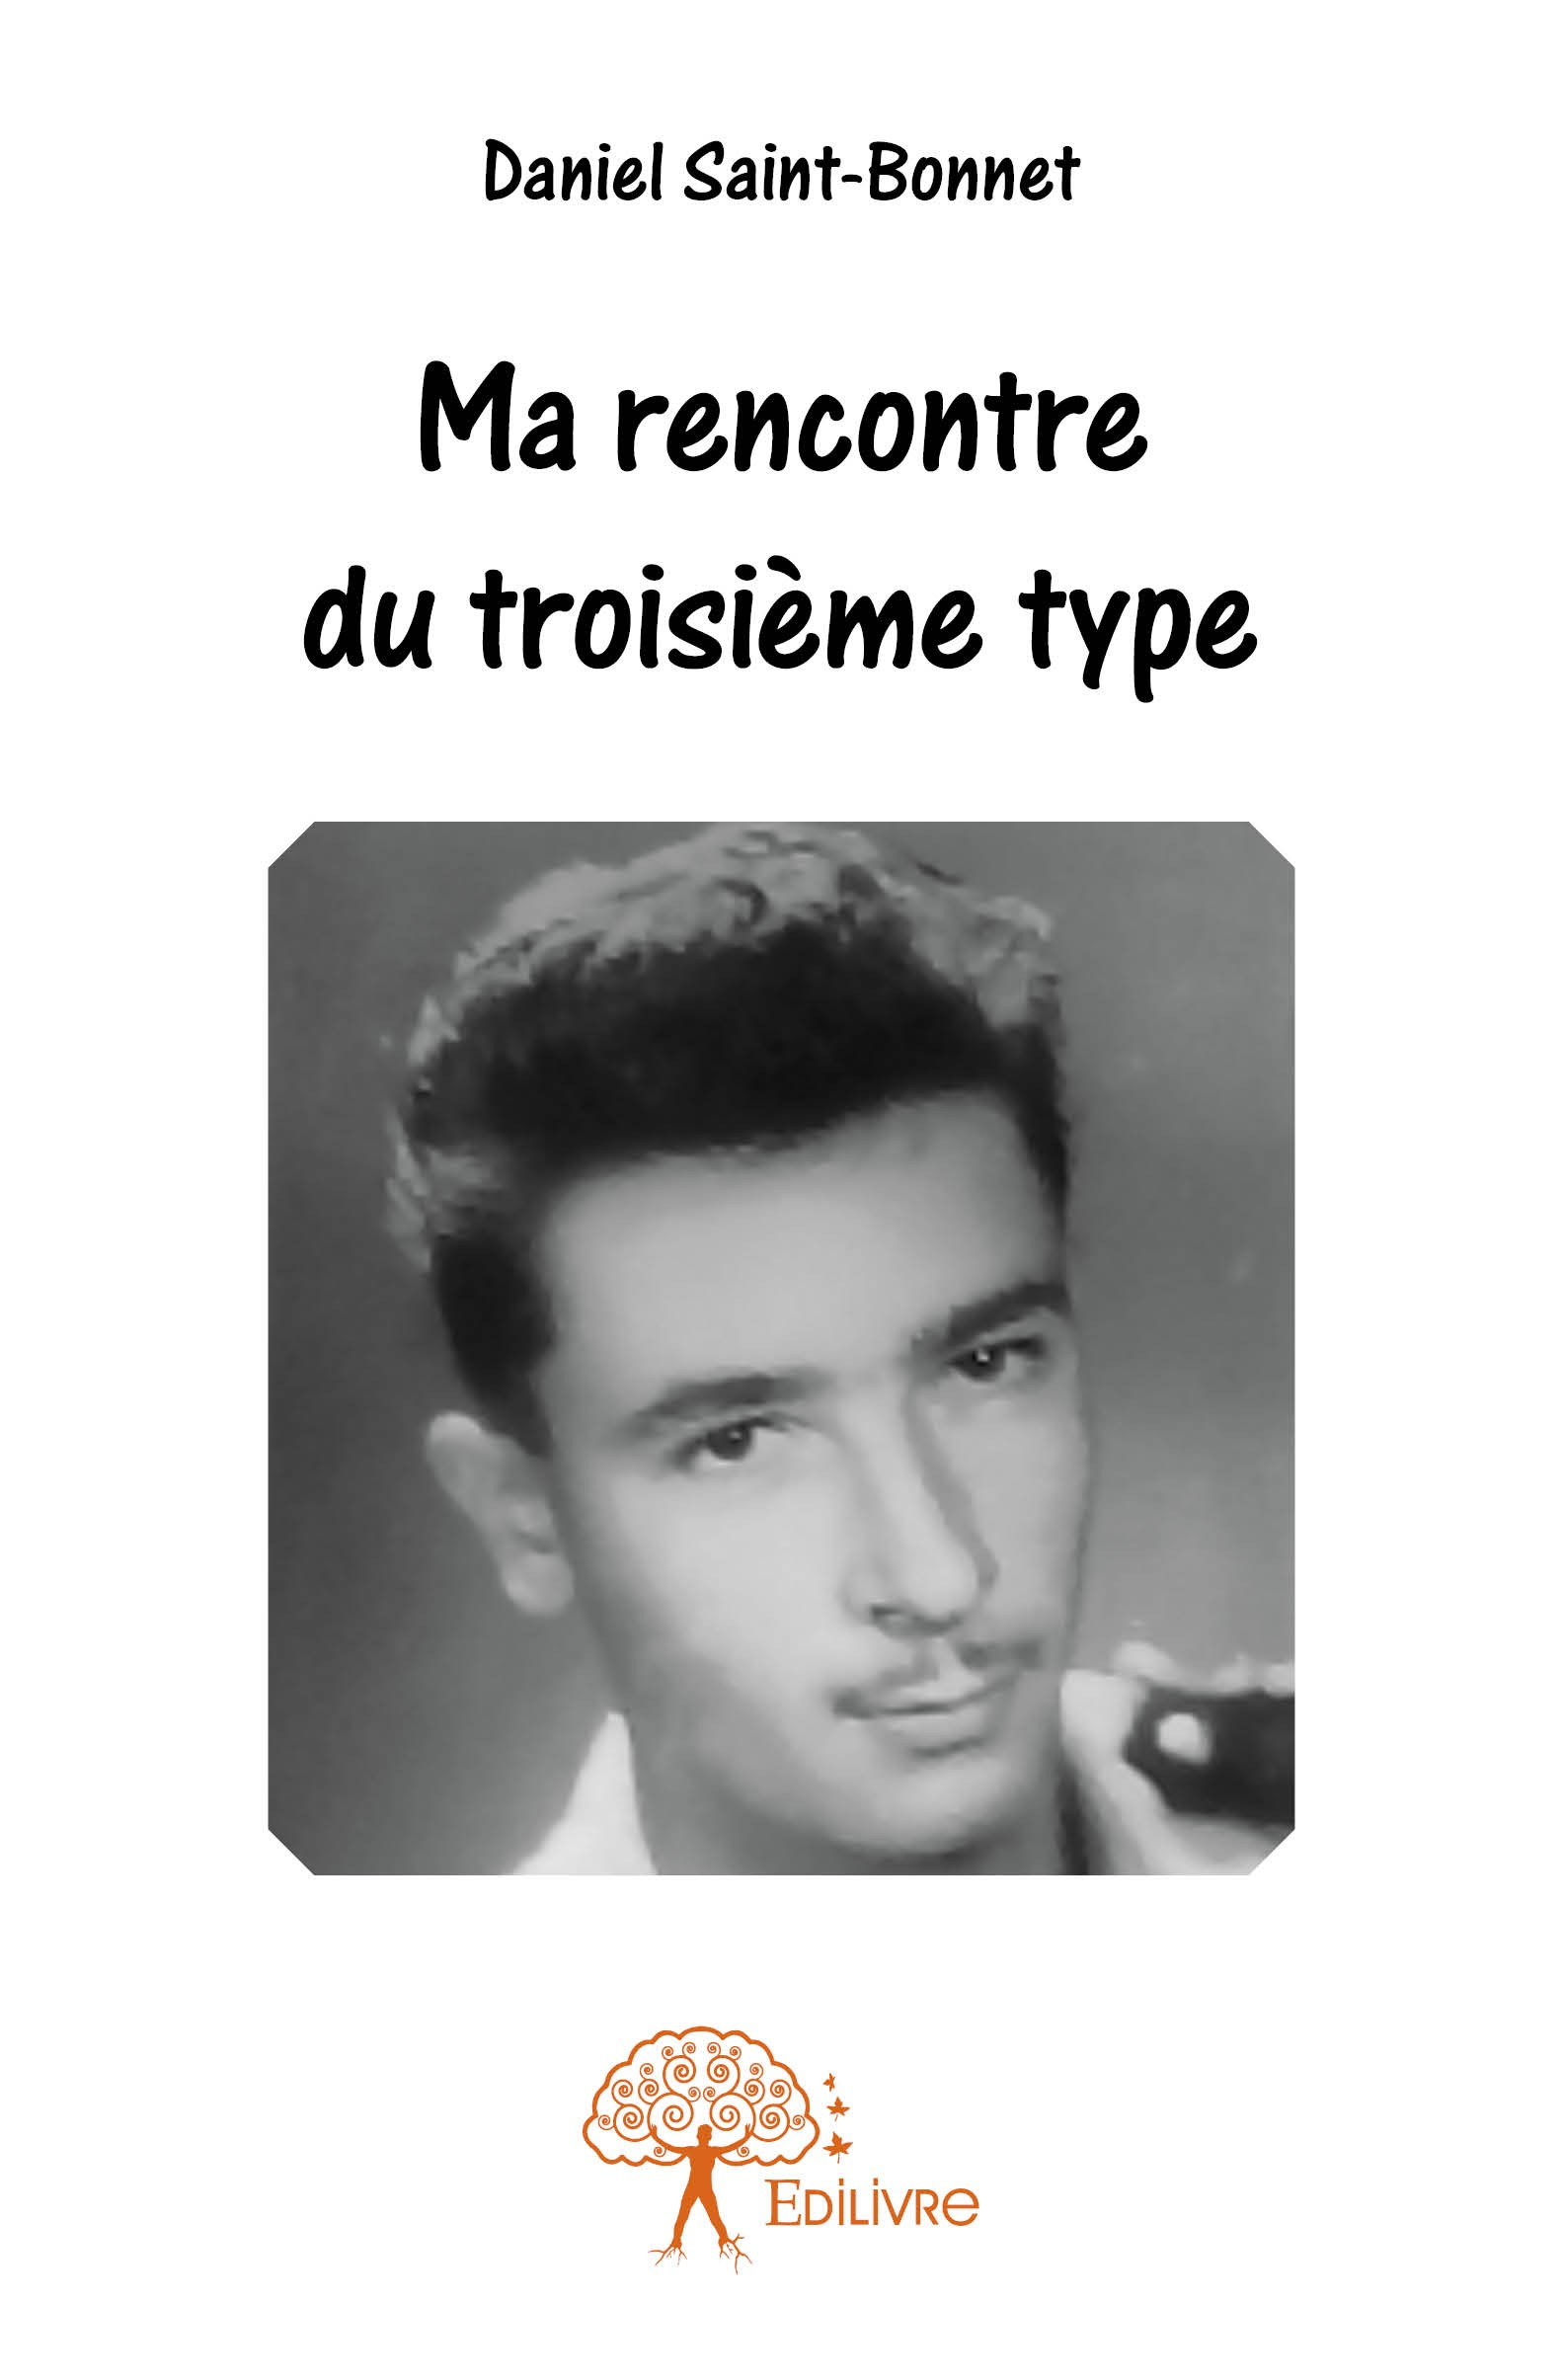 5 notes rencontre du troisieme type mp3